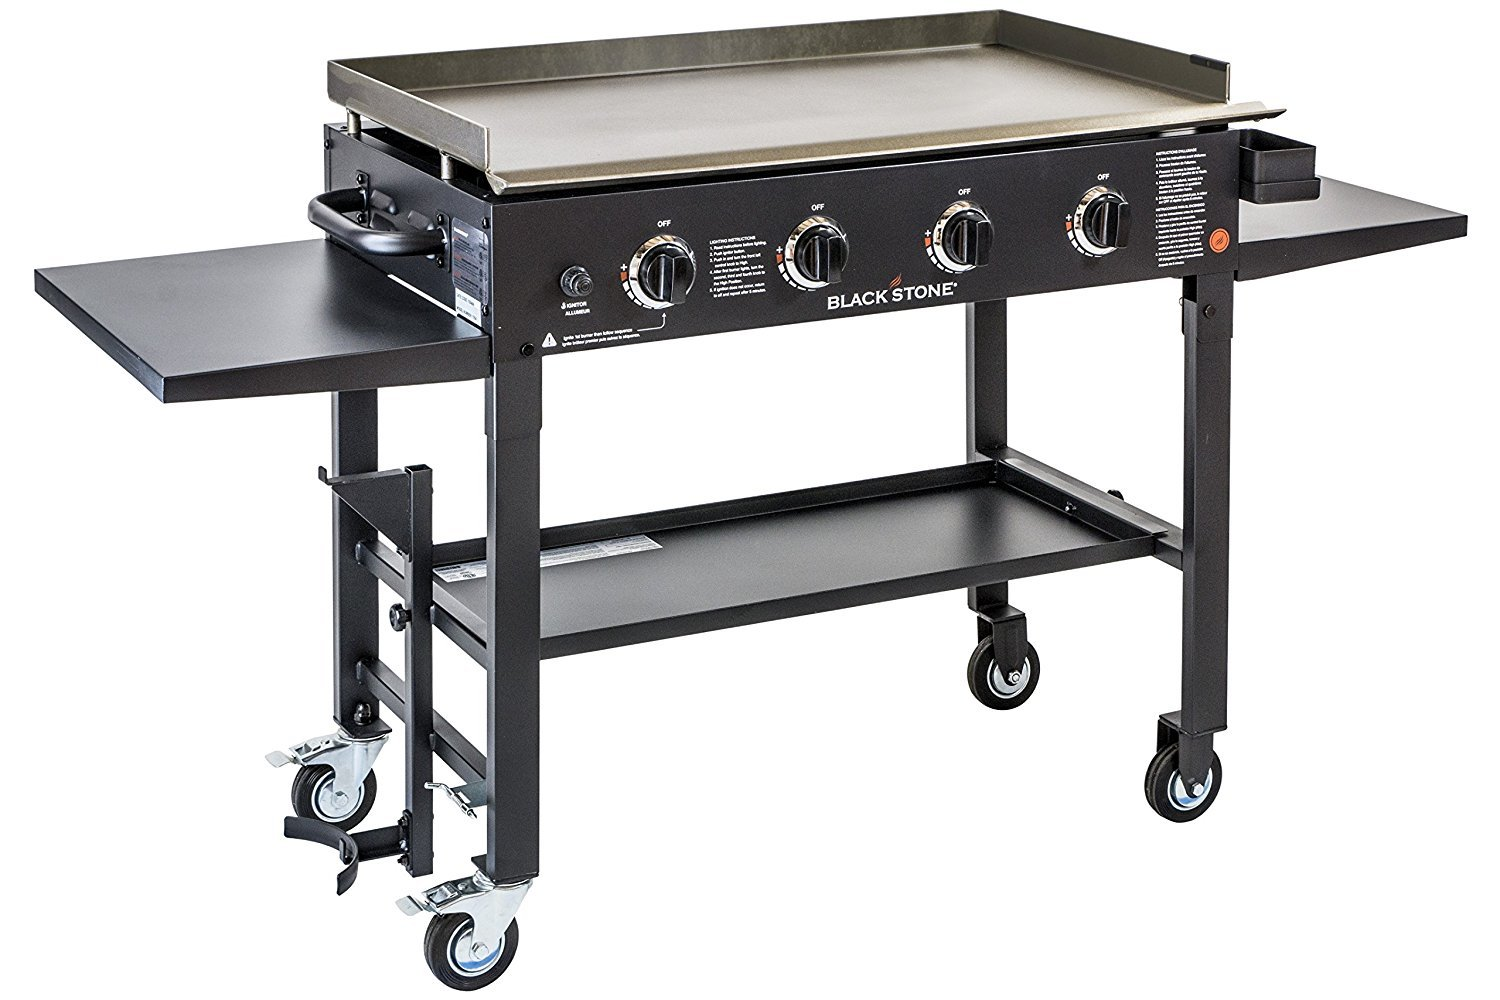 Charcoal Grill Home Depot Furniture Design